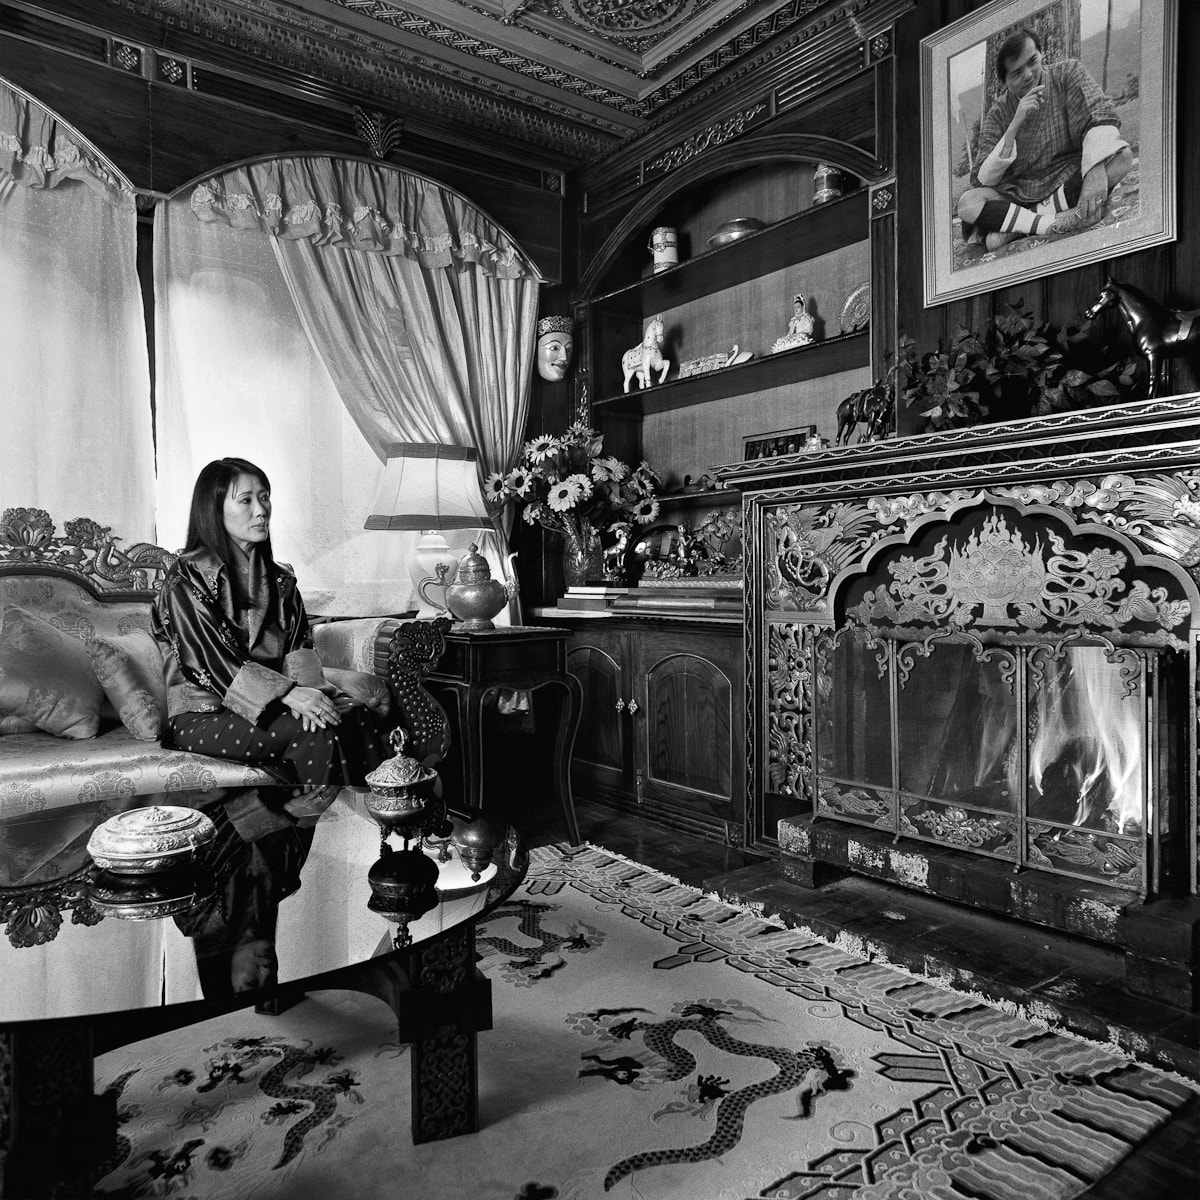 Her Majesty The Queen of Bhutan, Ashi Dorji Wangmo Wangchuck, at home in her palace in Thimphu. Image by Serena Chopra. Courtesy Tasveer.